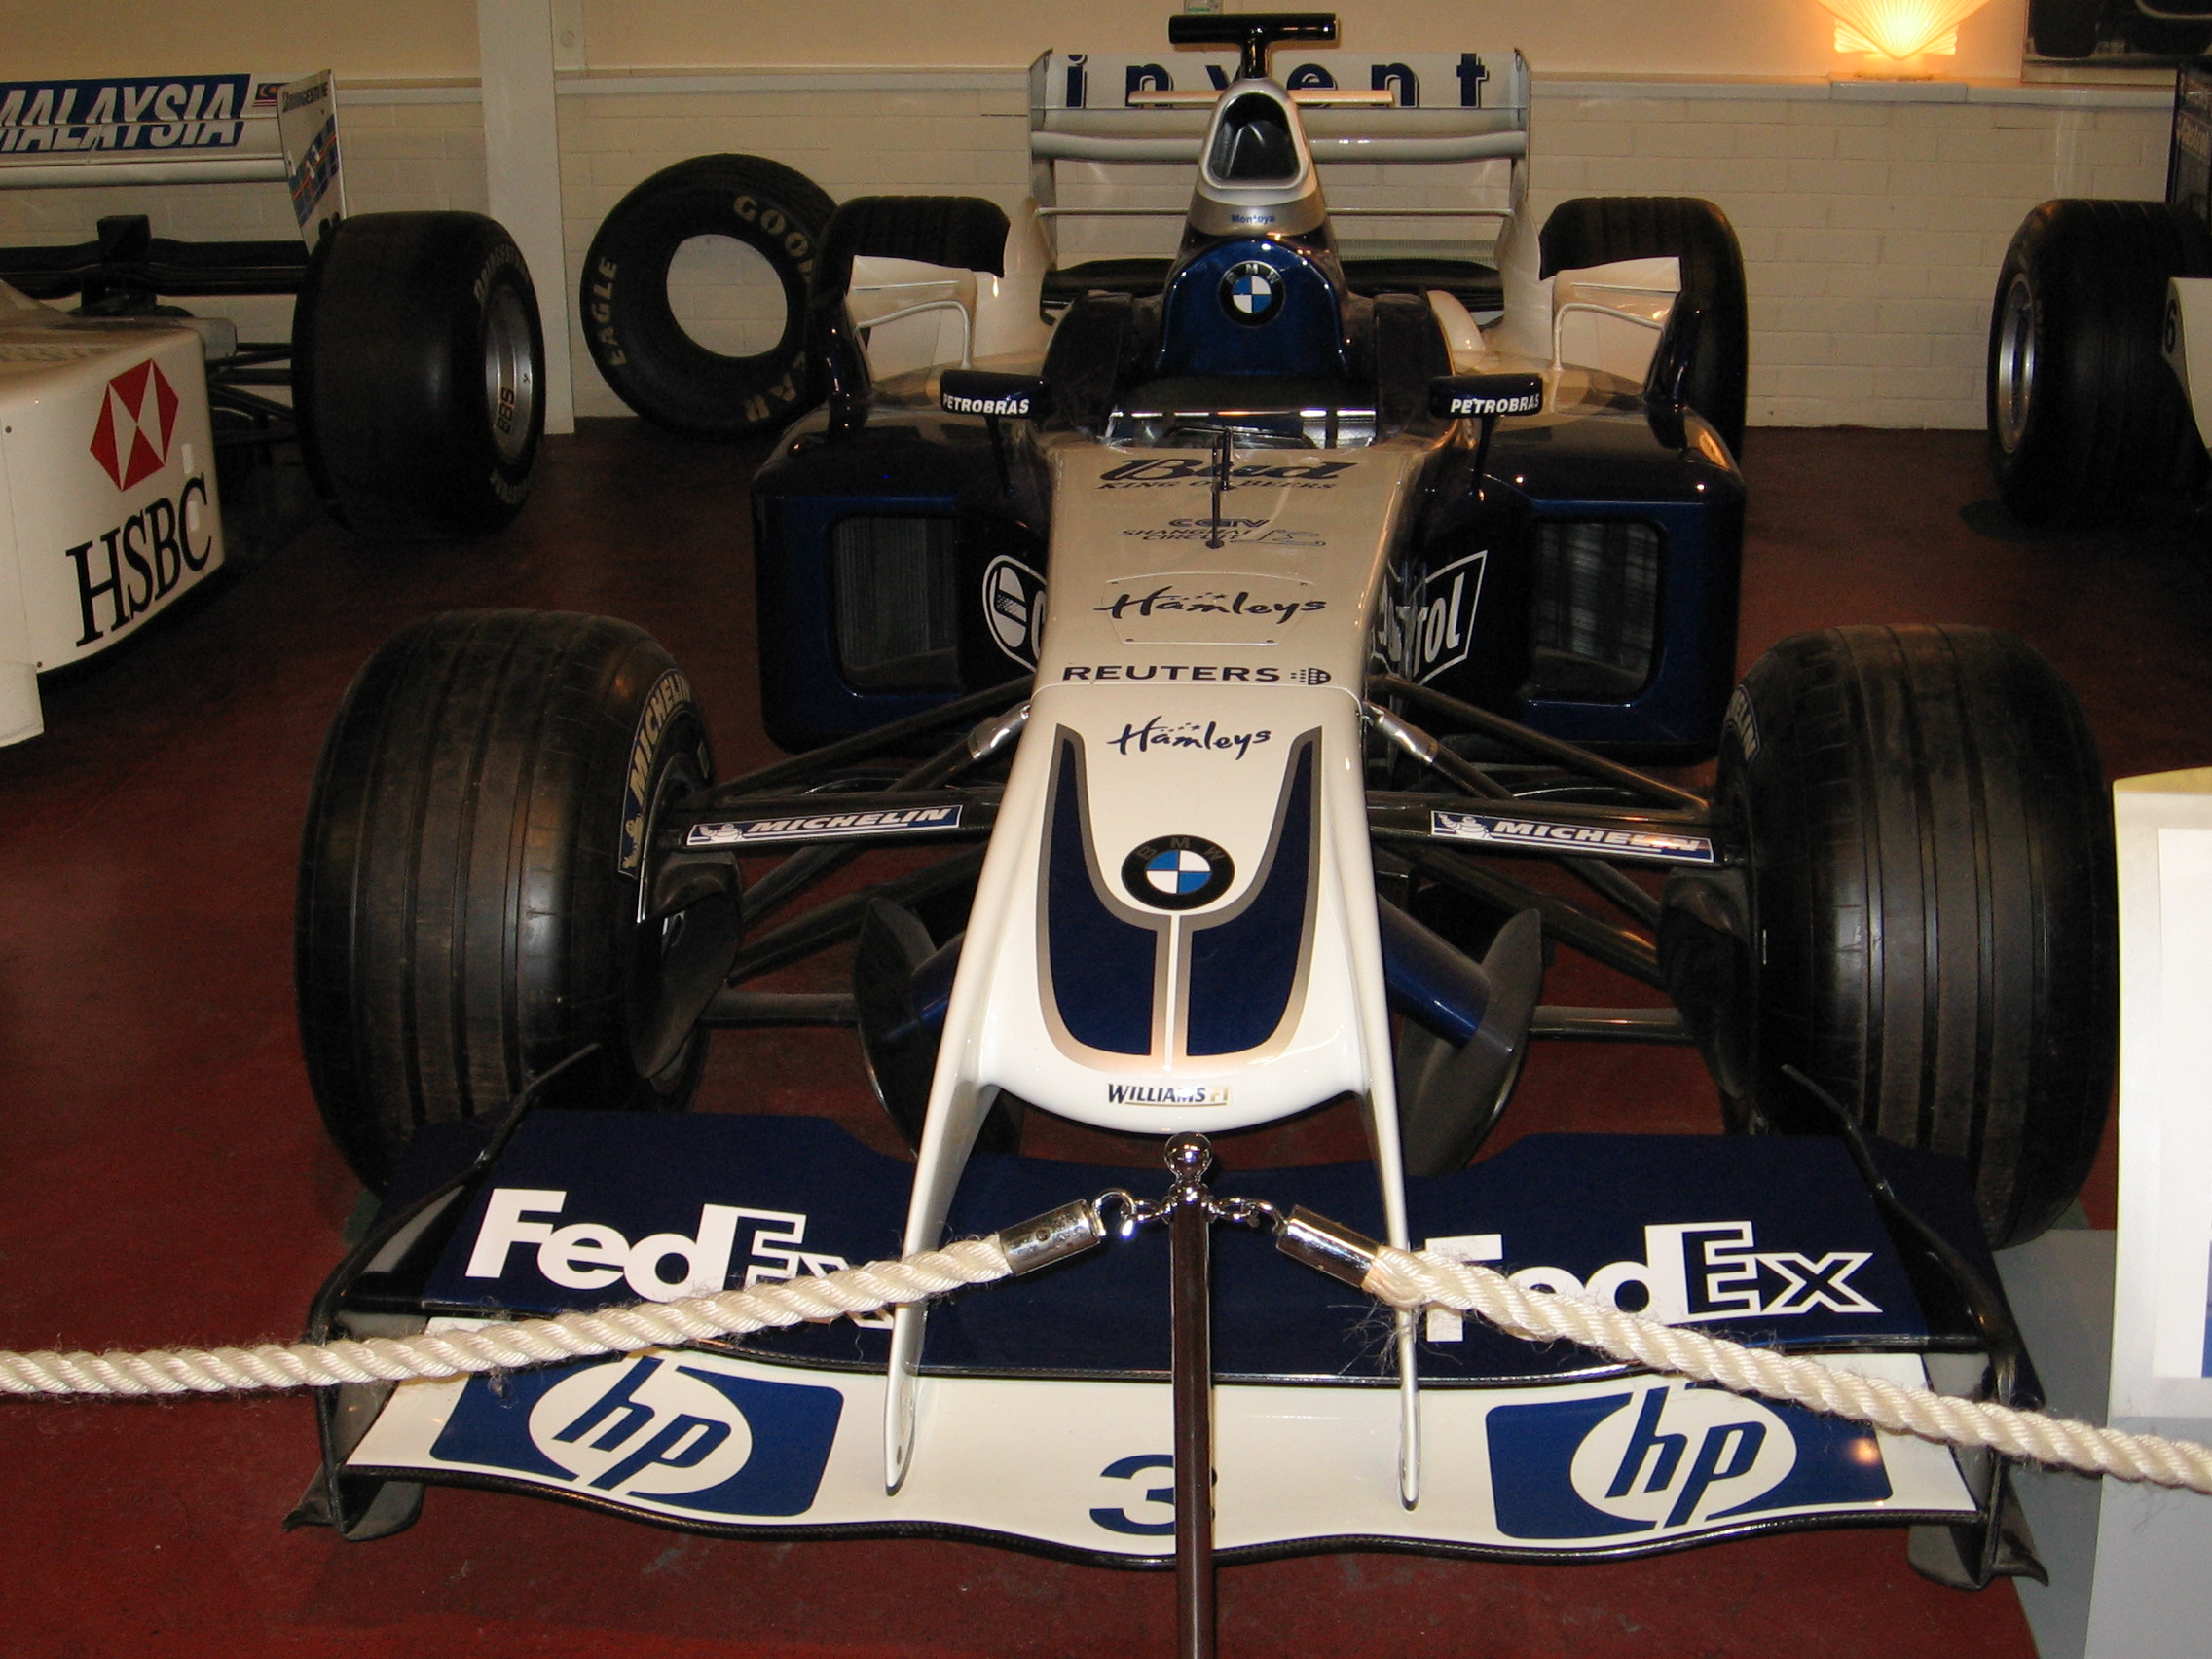 Williams fw26 photo - 4